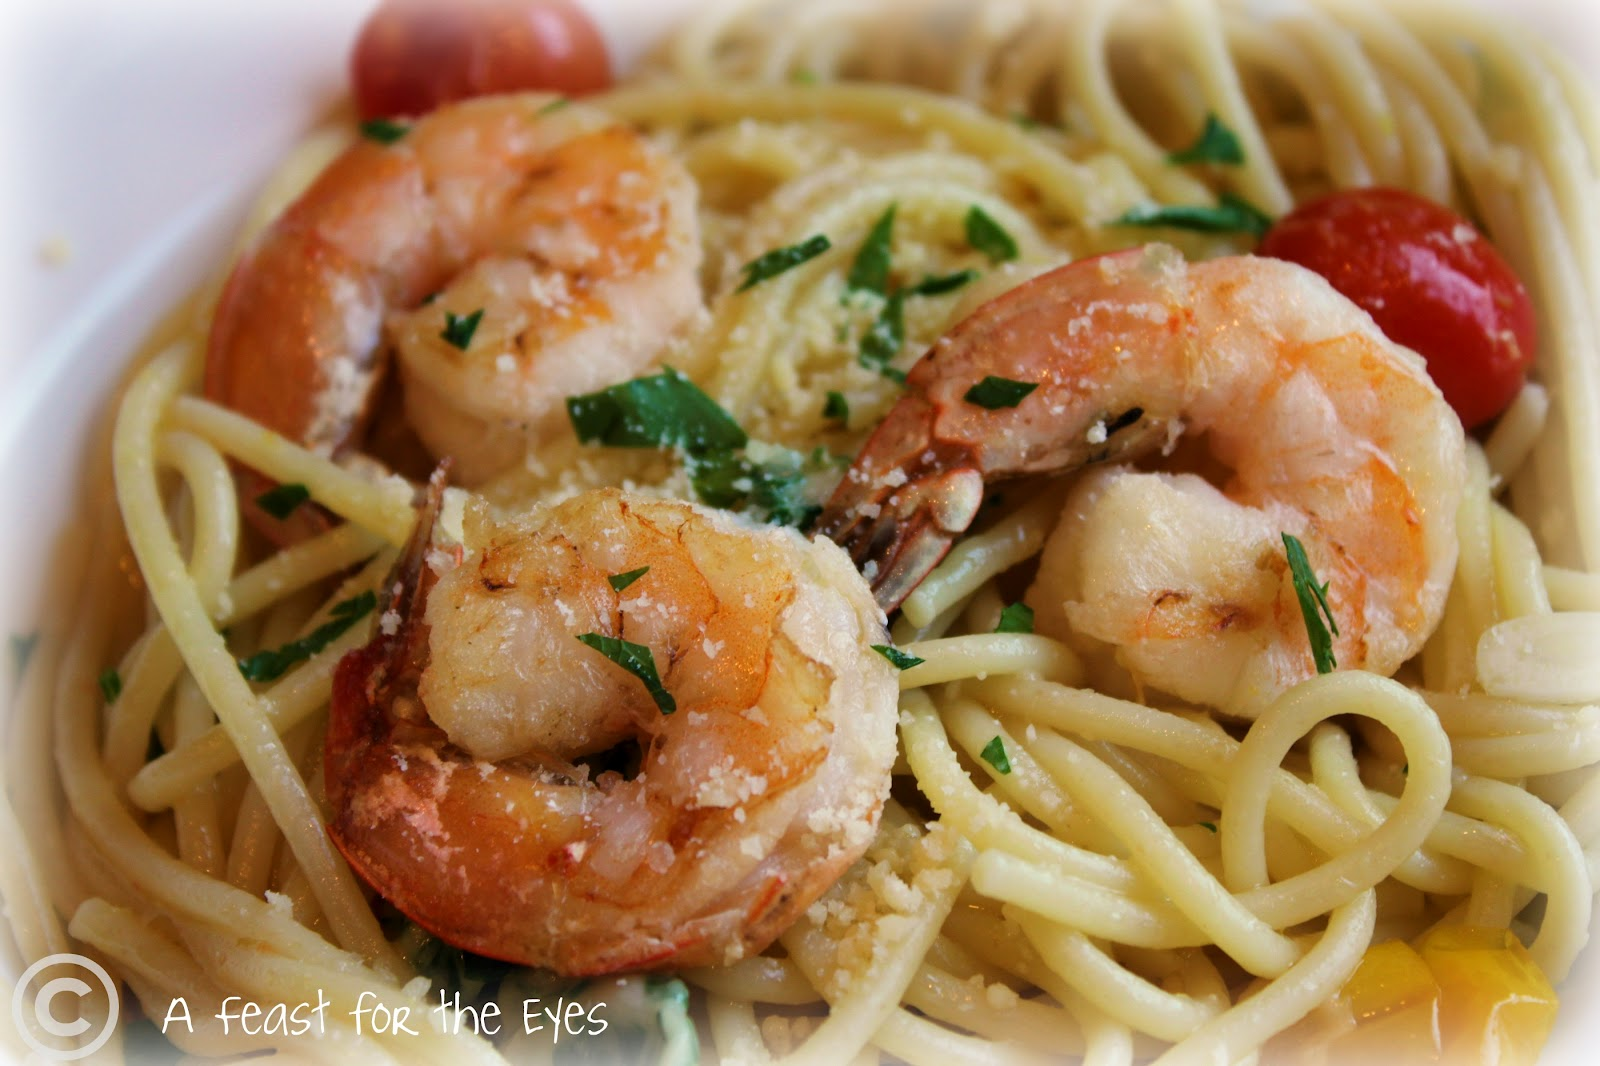 Ina Garten Pasta Alluring With Ina Garten Pasta with Shrimp Picture